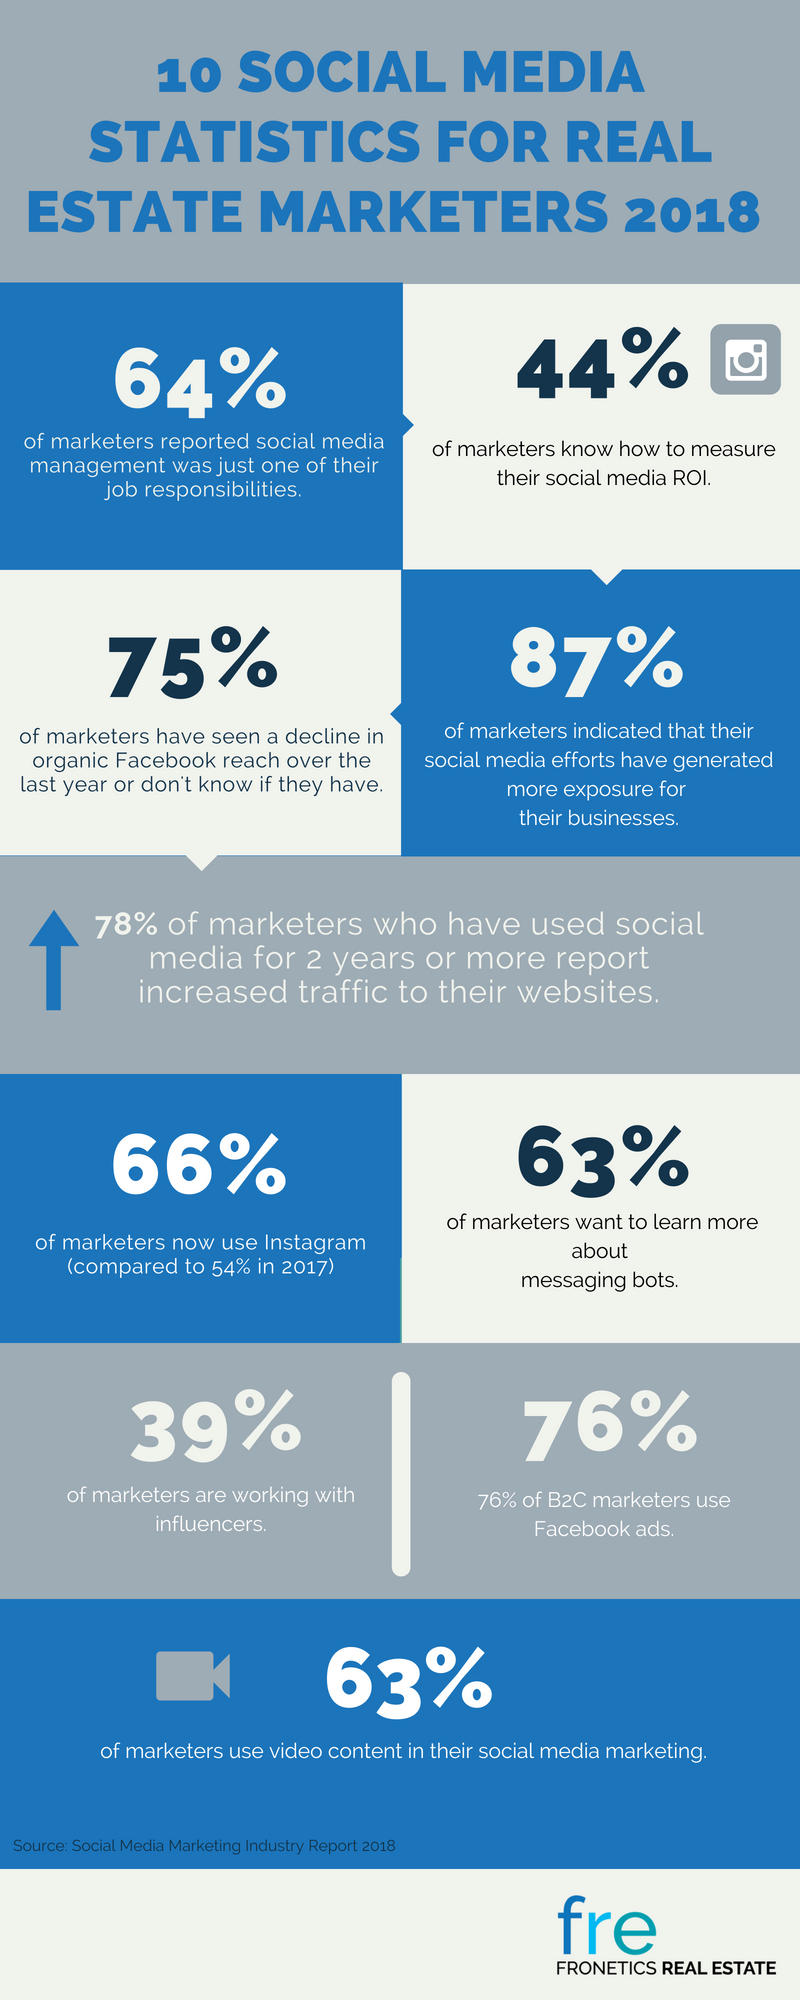 10 Social Media Statistics for Real Estate Marketers 2018